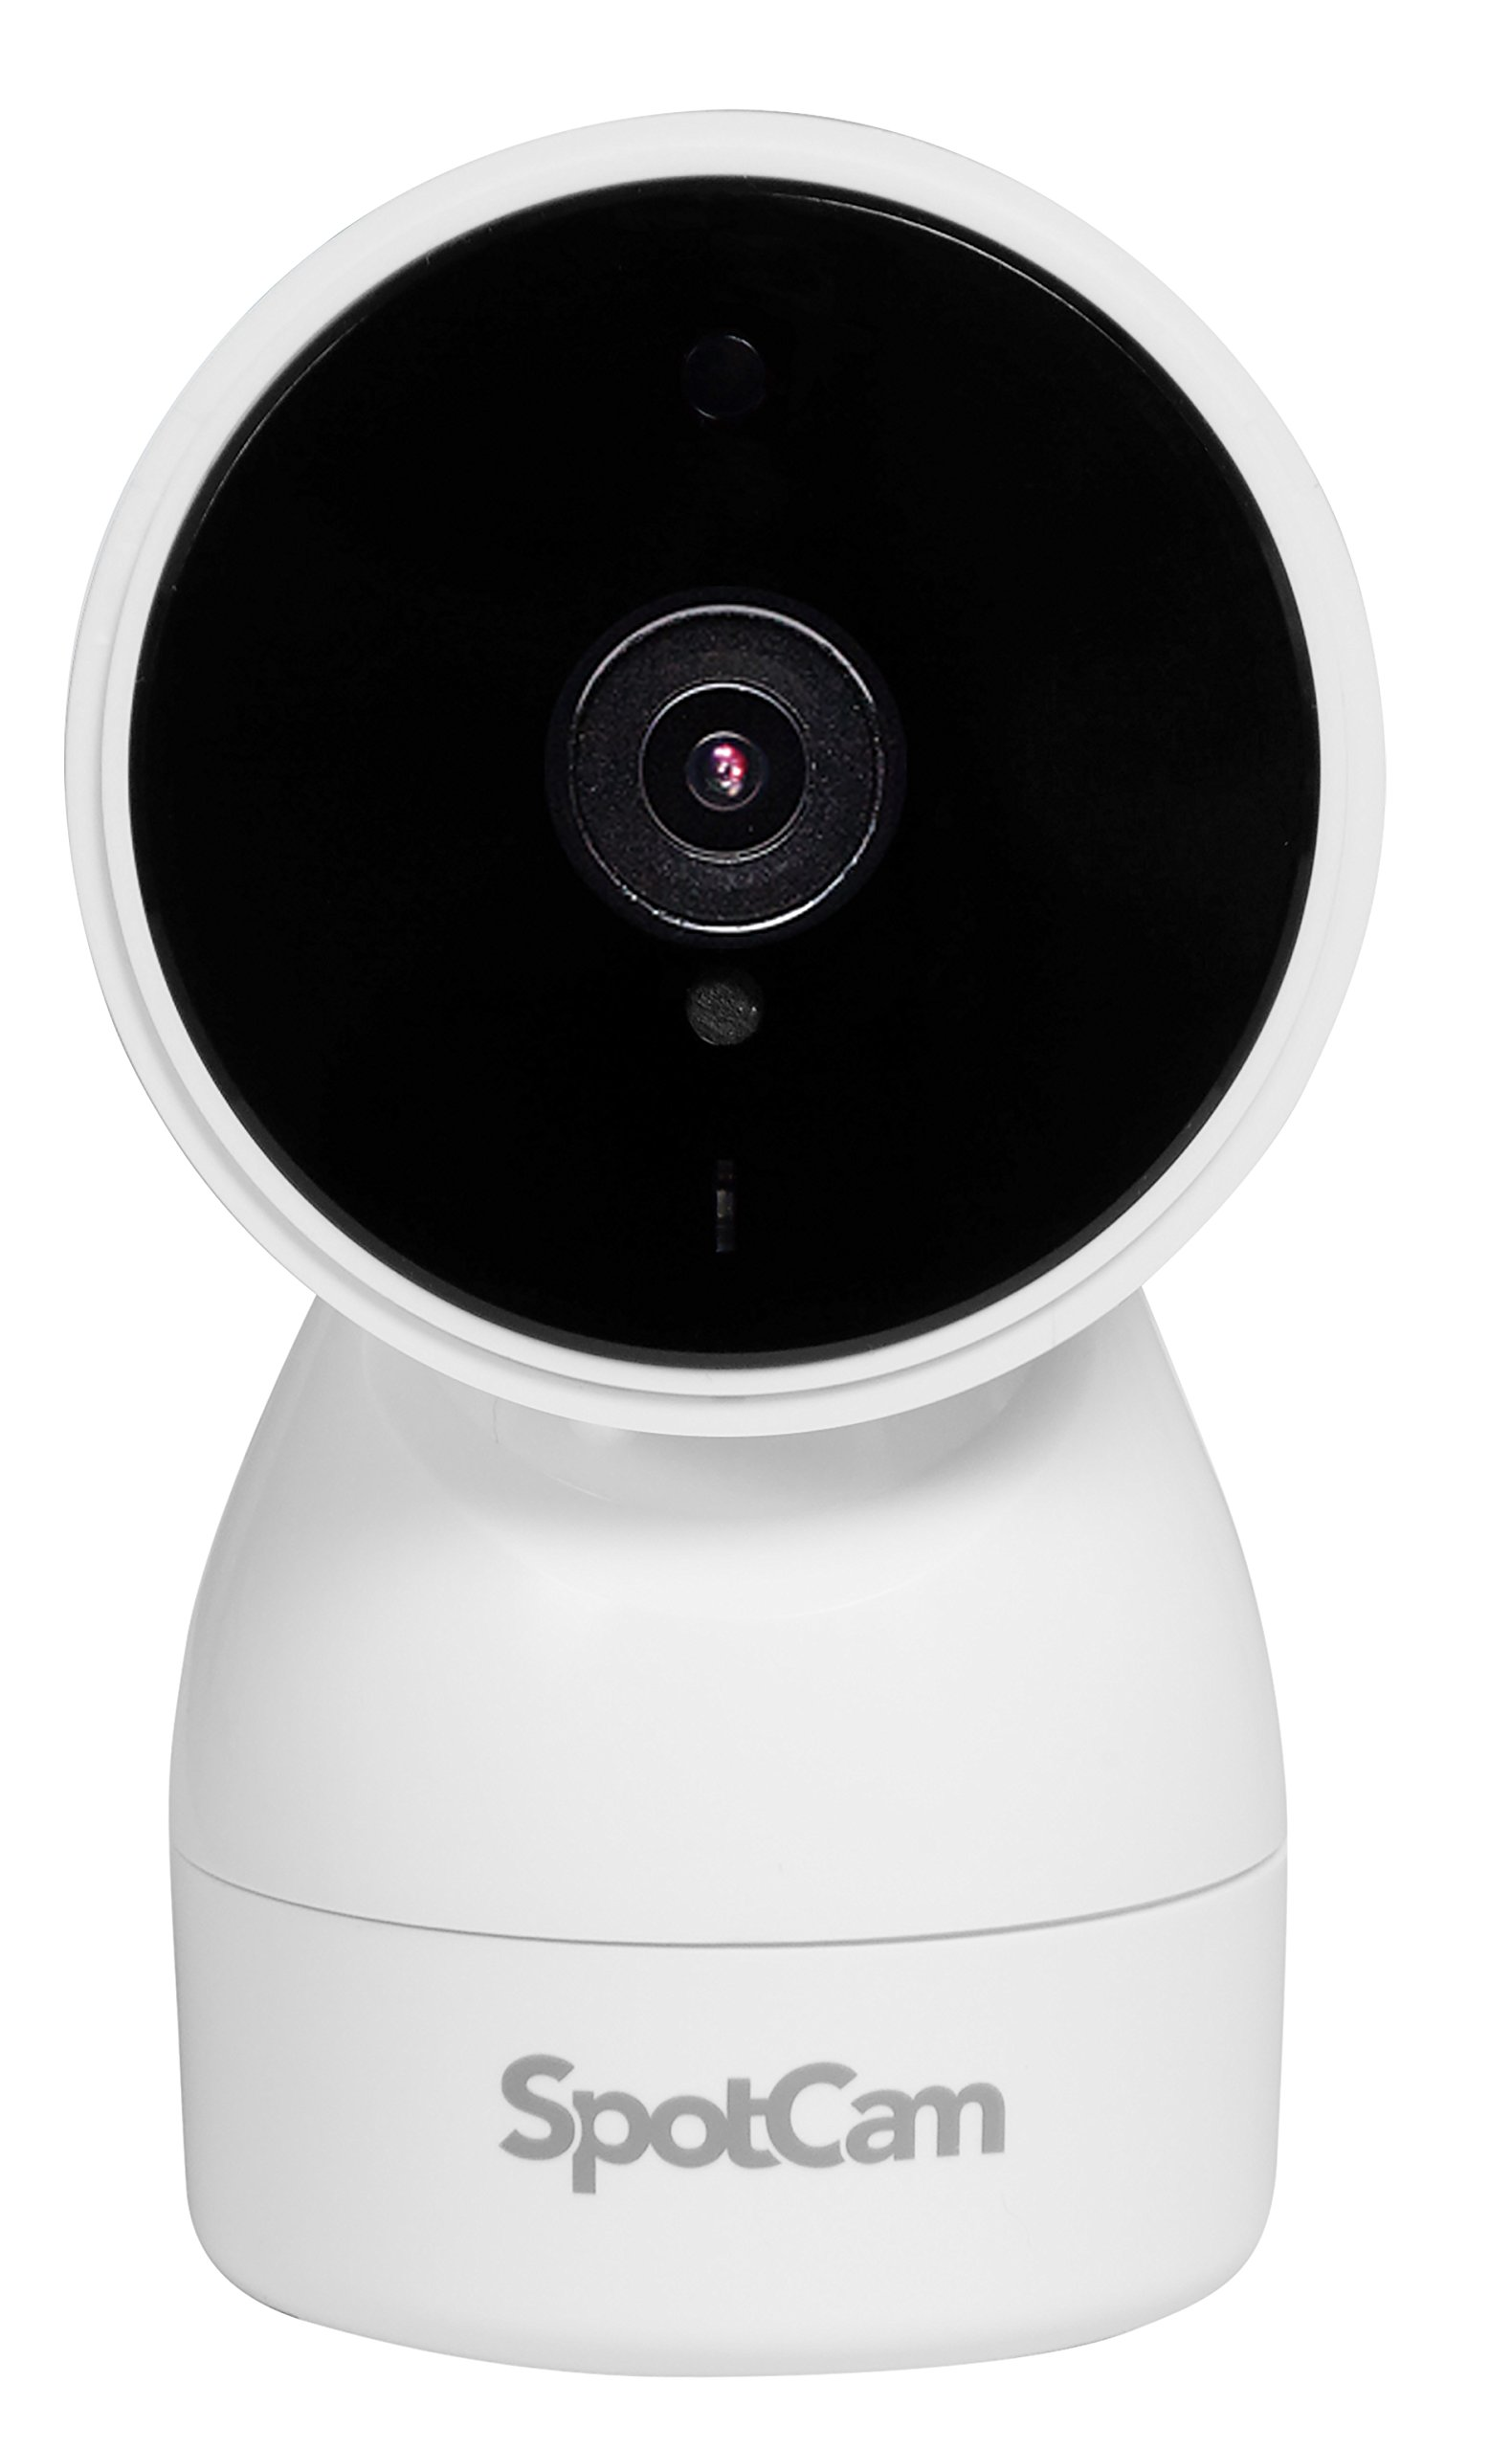 Aposonic SpotCam HD Eva 720P WiFi Home Security Cloud PTZ Camera with Free 24-Hour Cloud Continuous Recording (White)